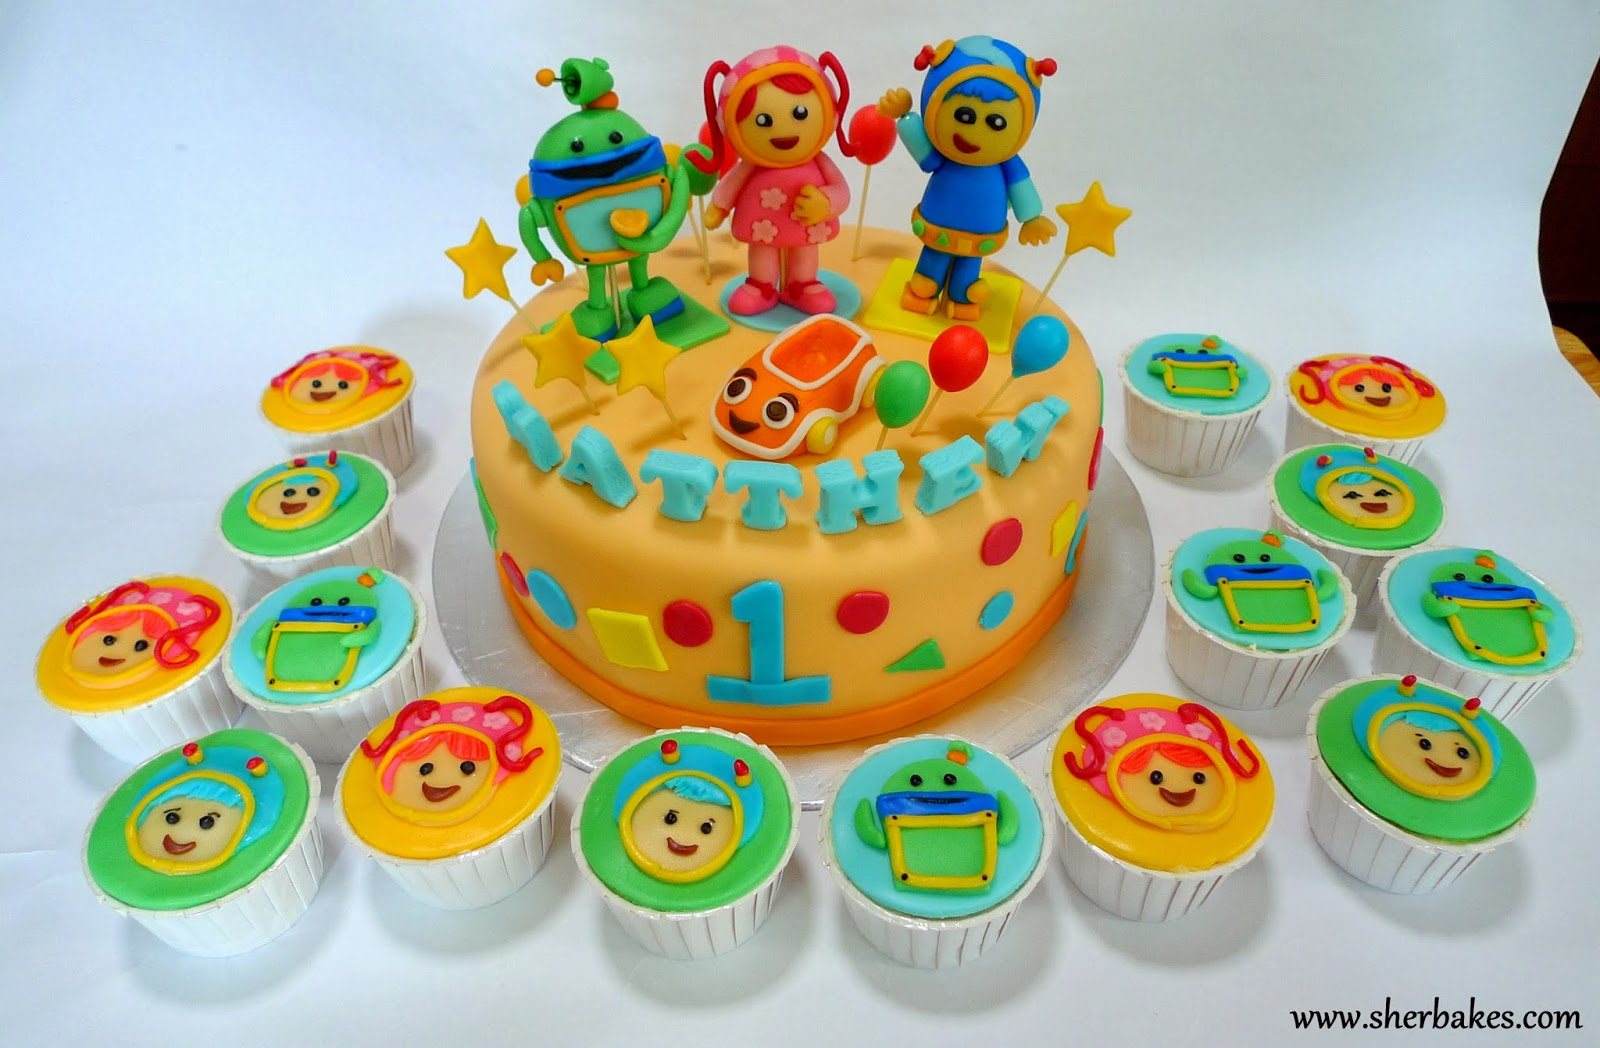 1048 In 23 Marvelous Image Of Team Umizoomi Birthday Cake